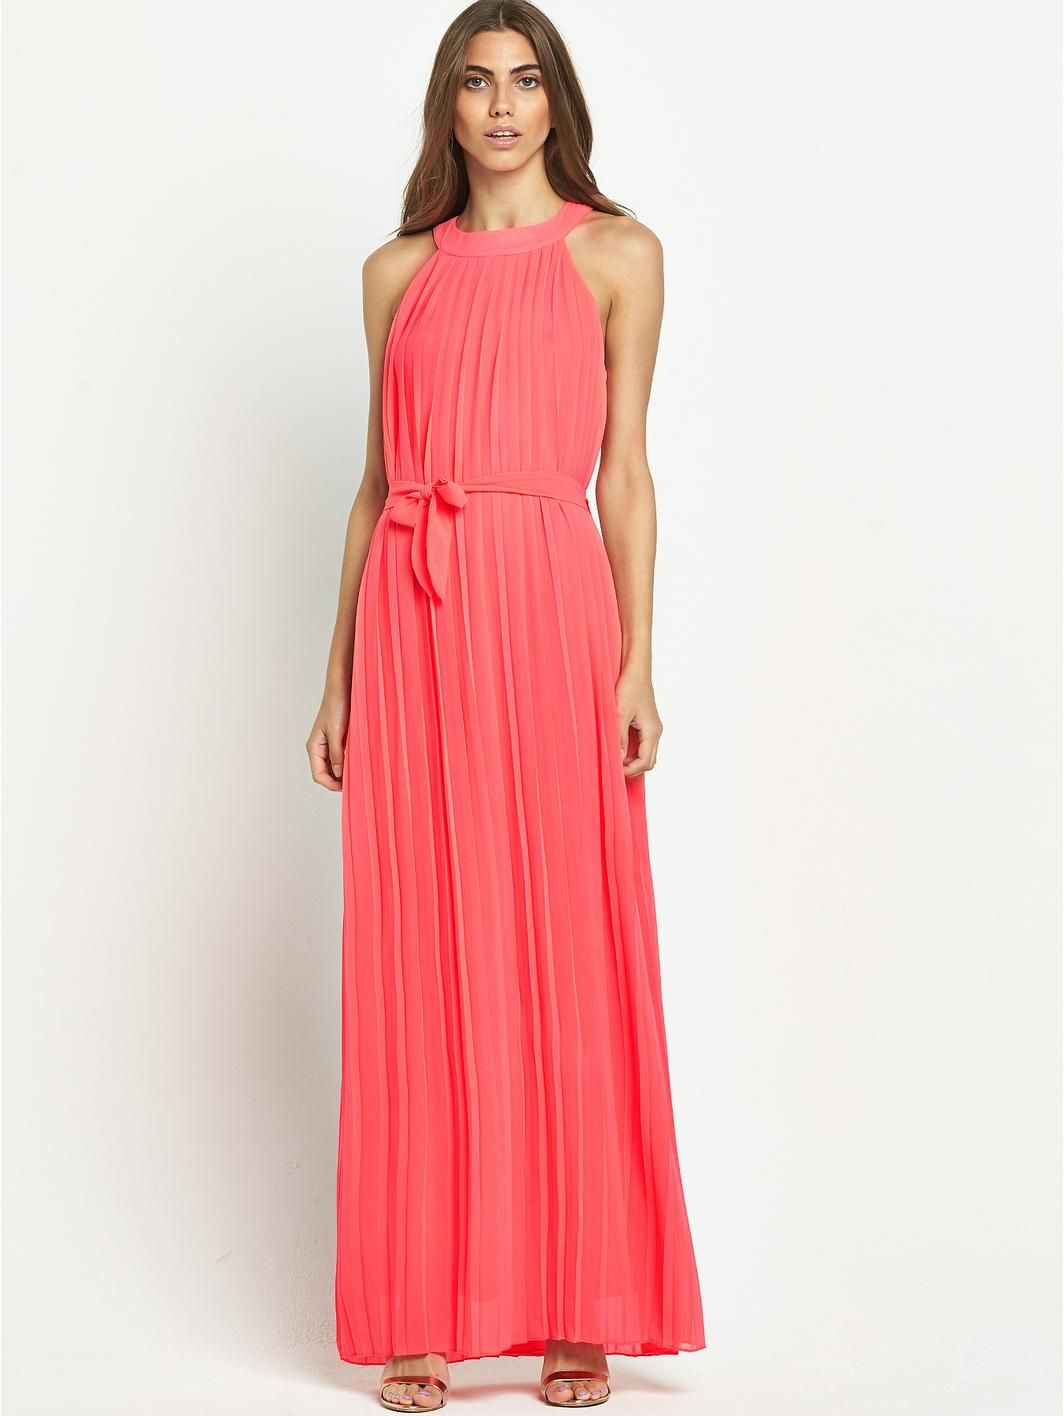 Pleated maxi dress httplittlewoodsclub l pleated maxi pleated maxi dress httplittlewoodsclub ombrellifo Image collections